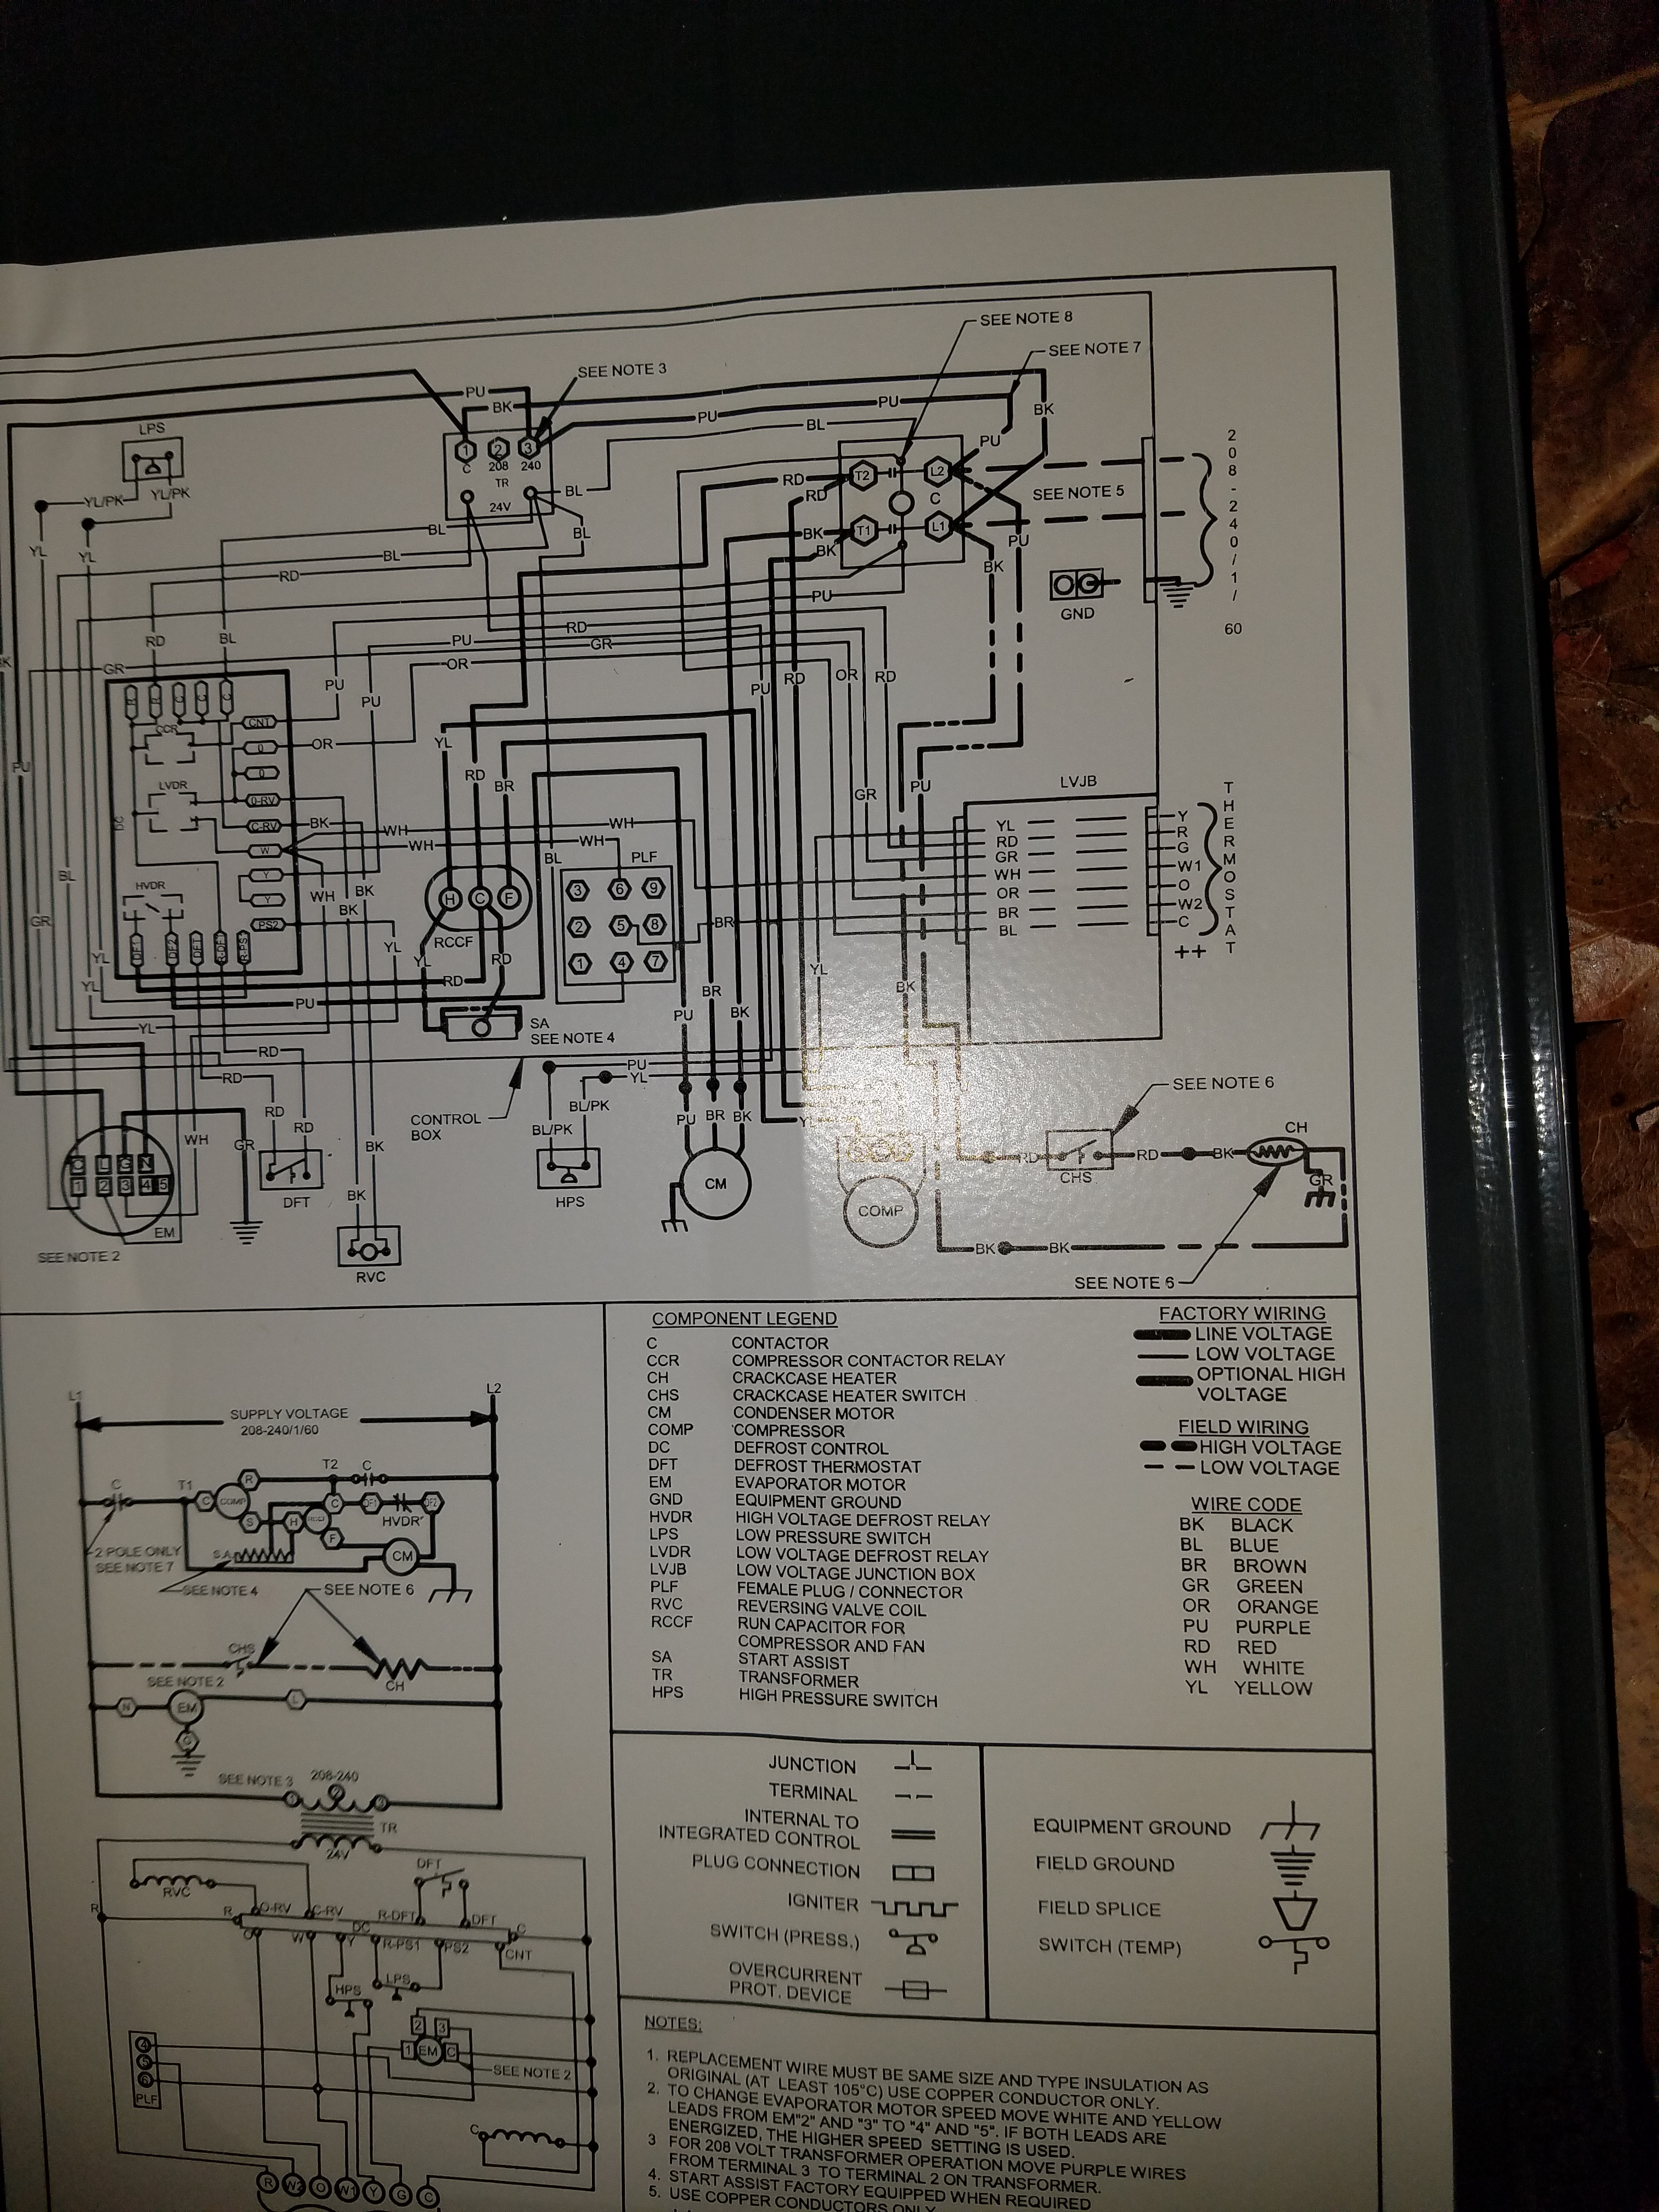 goodman 10kw heat strip wiring diagram goodman need help wiring goodman package unit gph1442 to hunter 44760 on goodman 10kw heat strip wiring